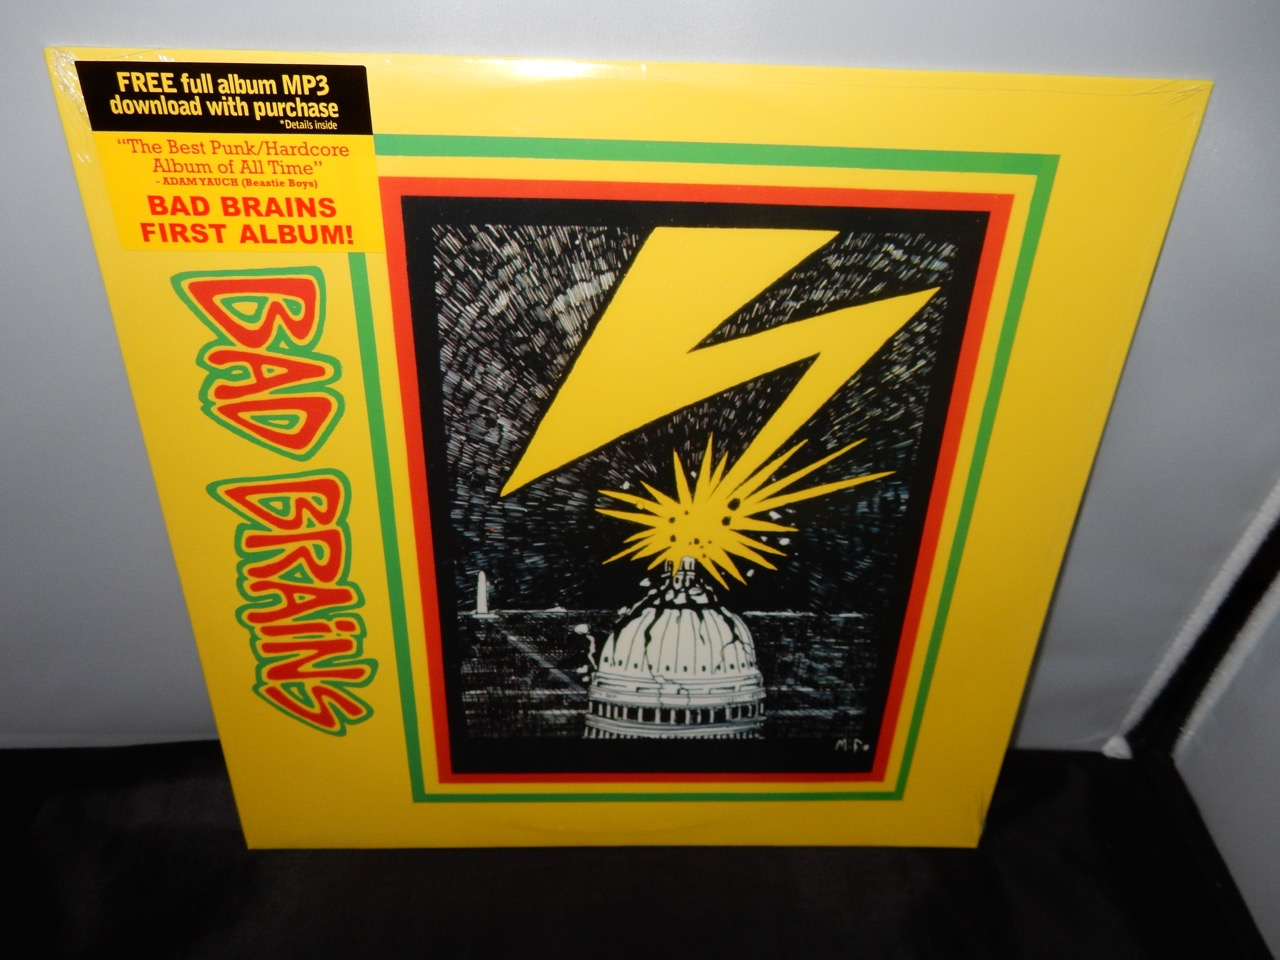 Bad Brains Bad Brains 2005 Reissue Of 1982 First Record